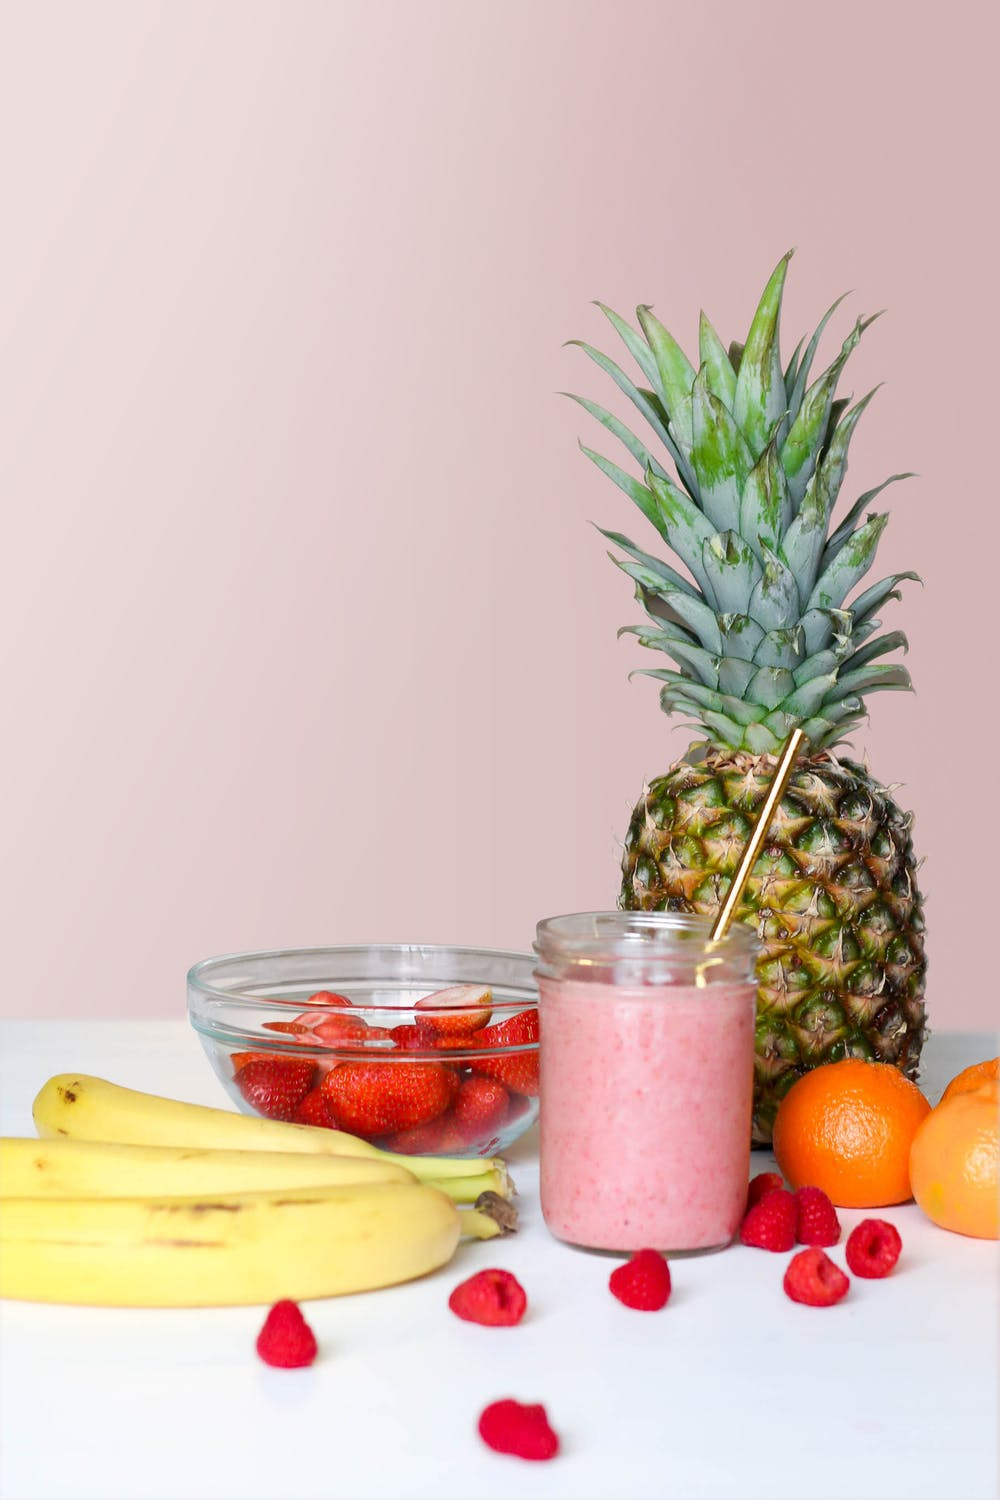 Simple Changes to diet that improve your long term health